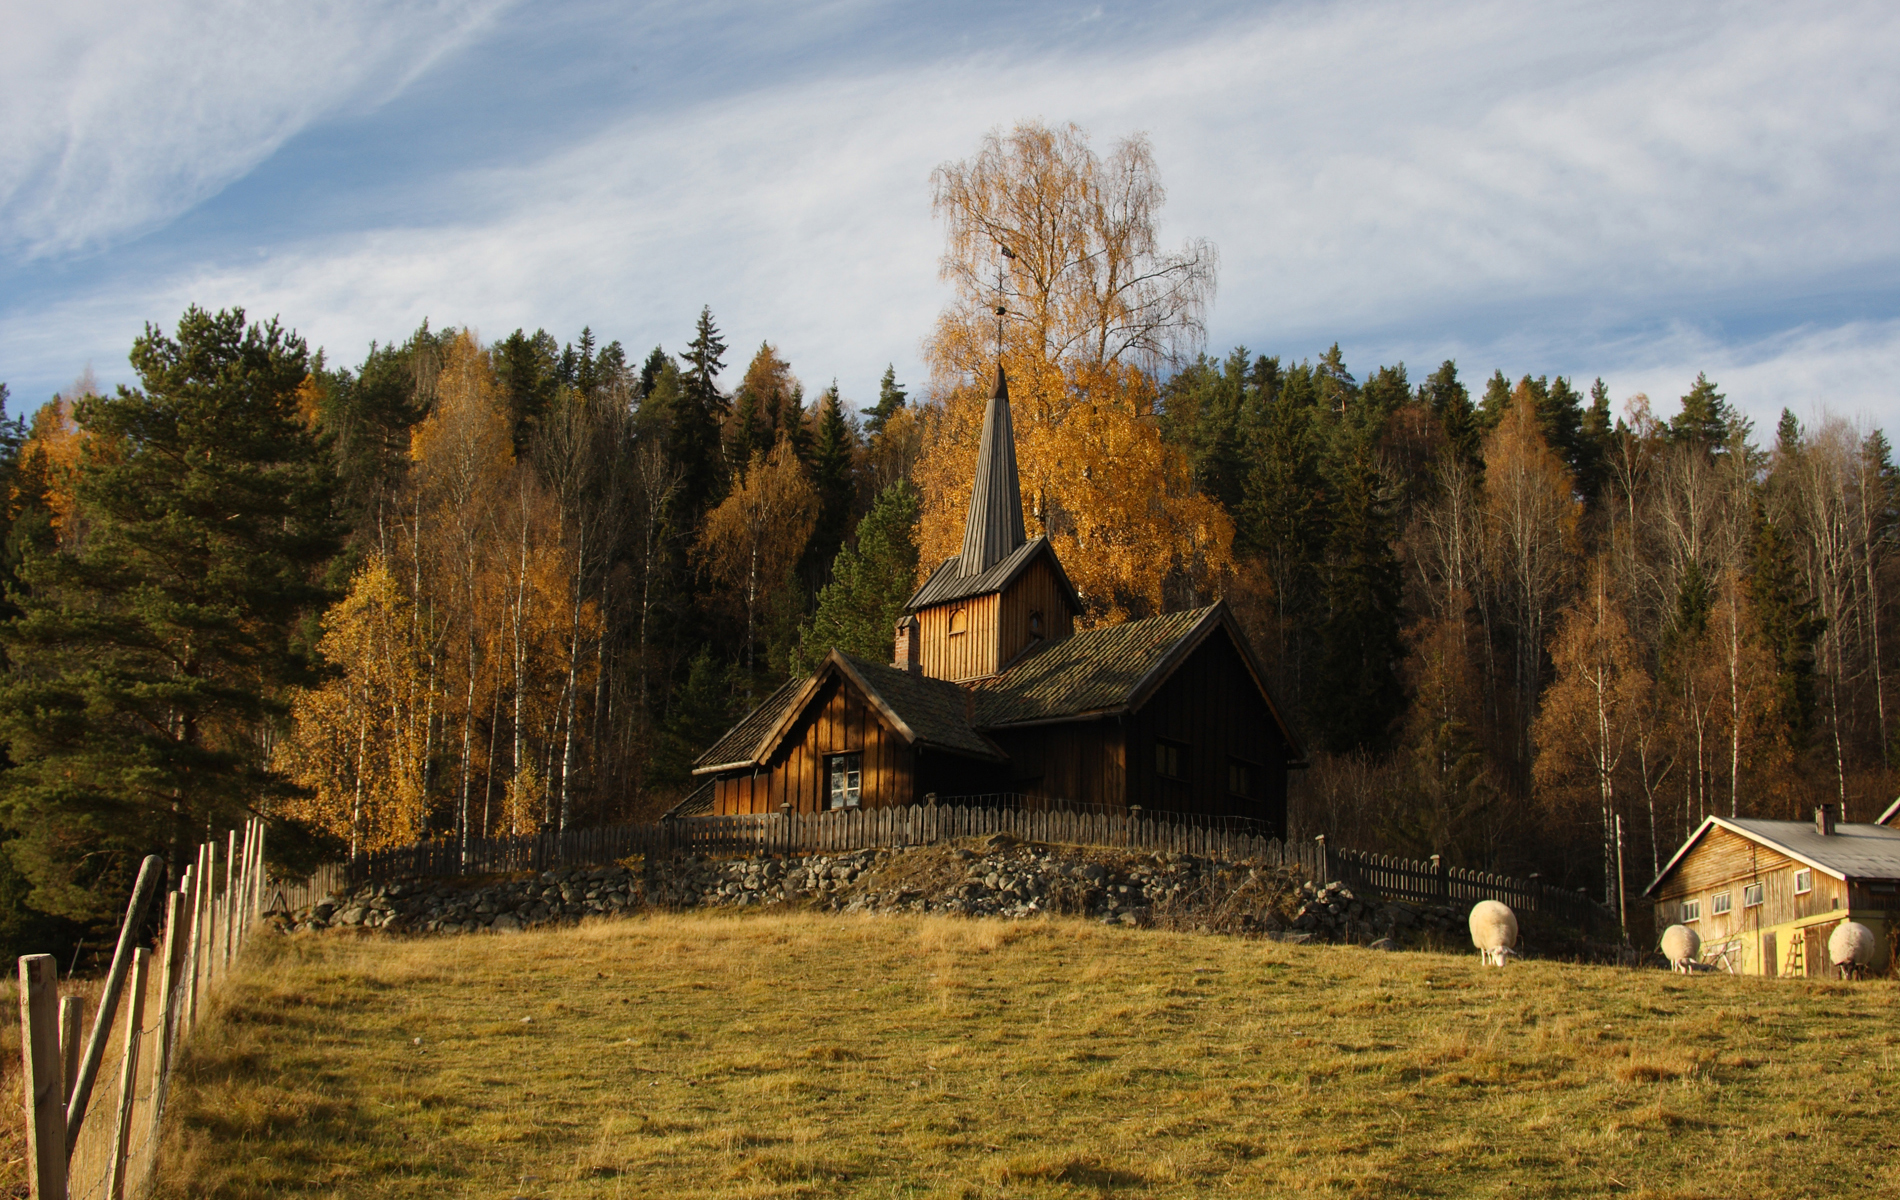 NORWAY - Country Church - © Graziano Villa